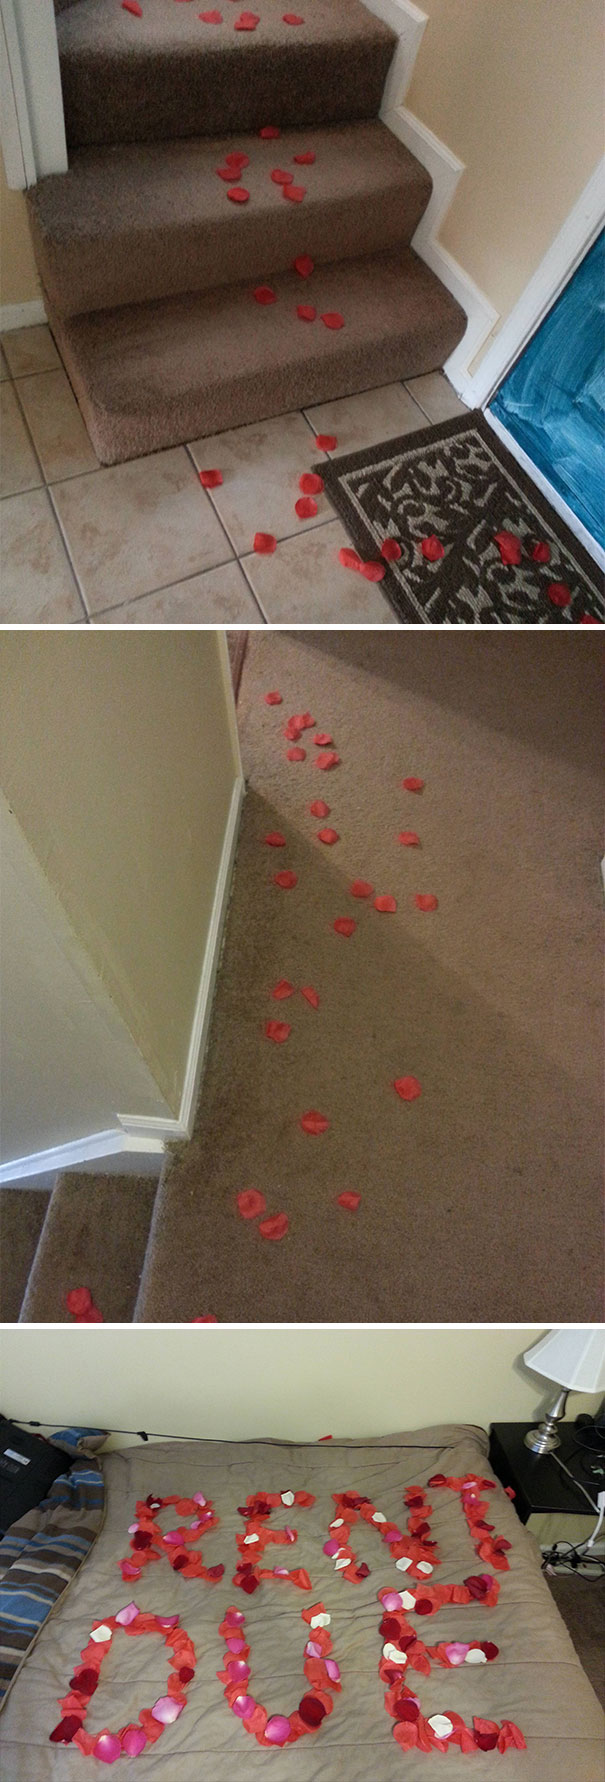 Left A Romantic Surprise For My Roommate